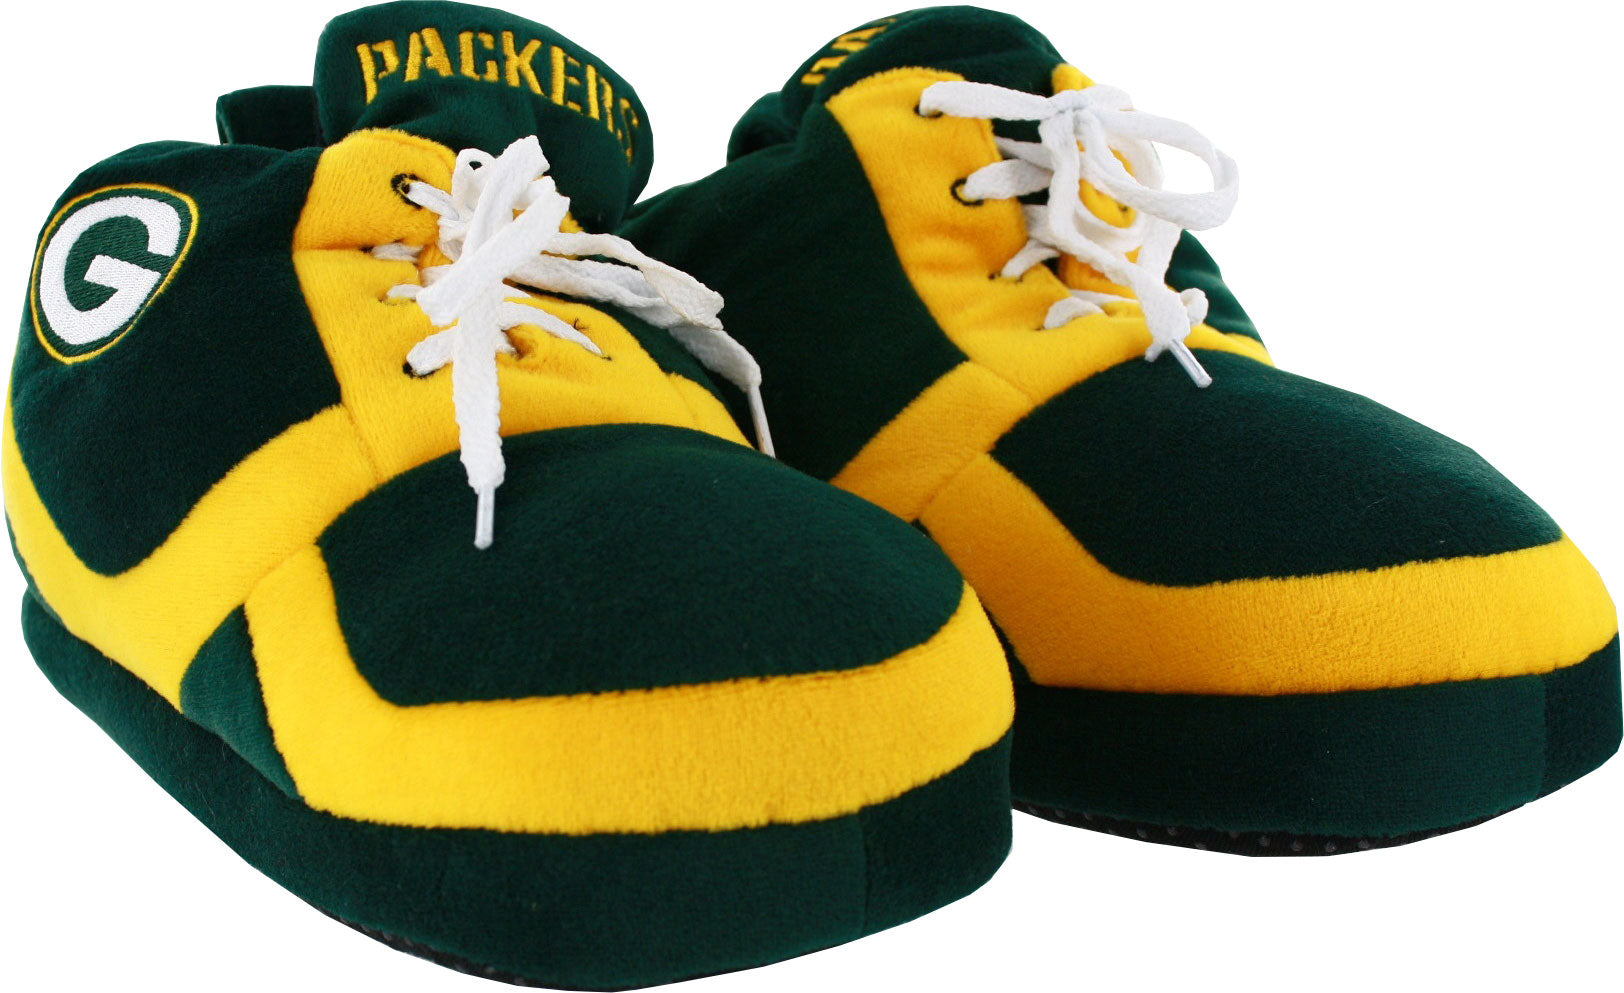 designer fashion 7fbd0 ffbc6 green bay packers,sneaker,slippers